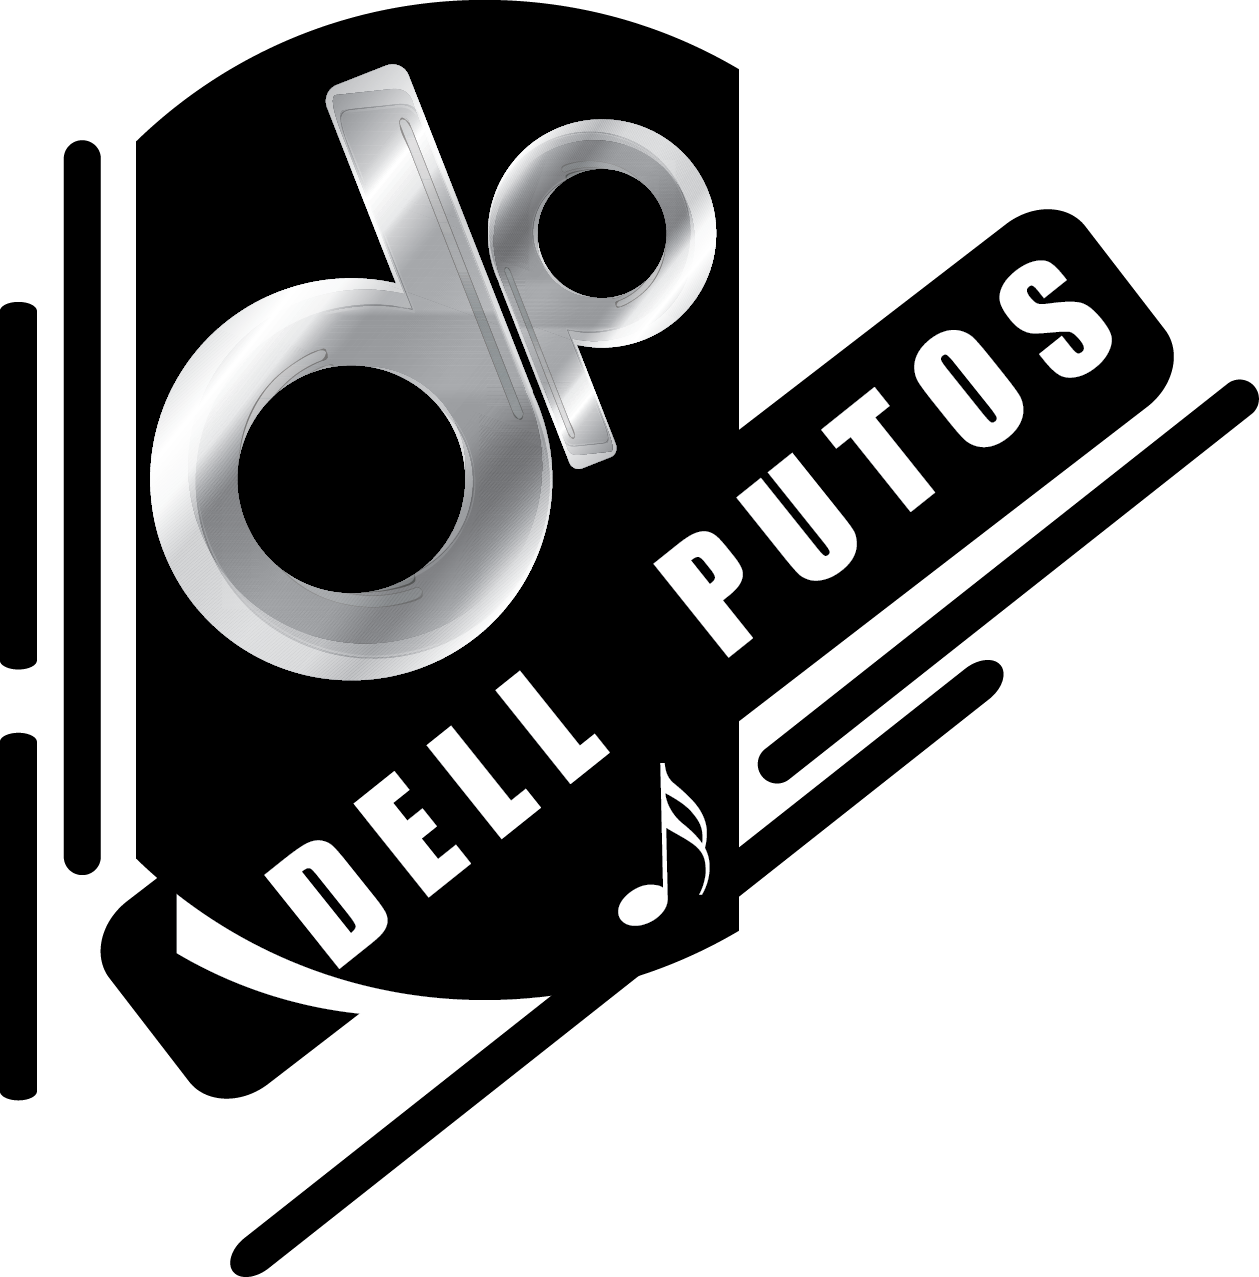 Dell Putos